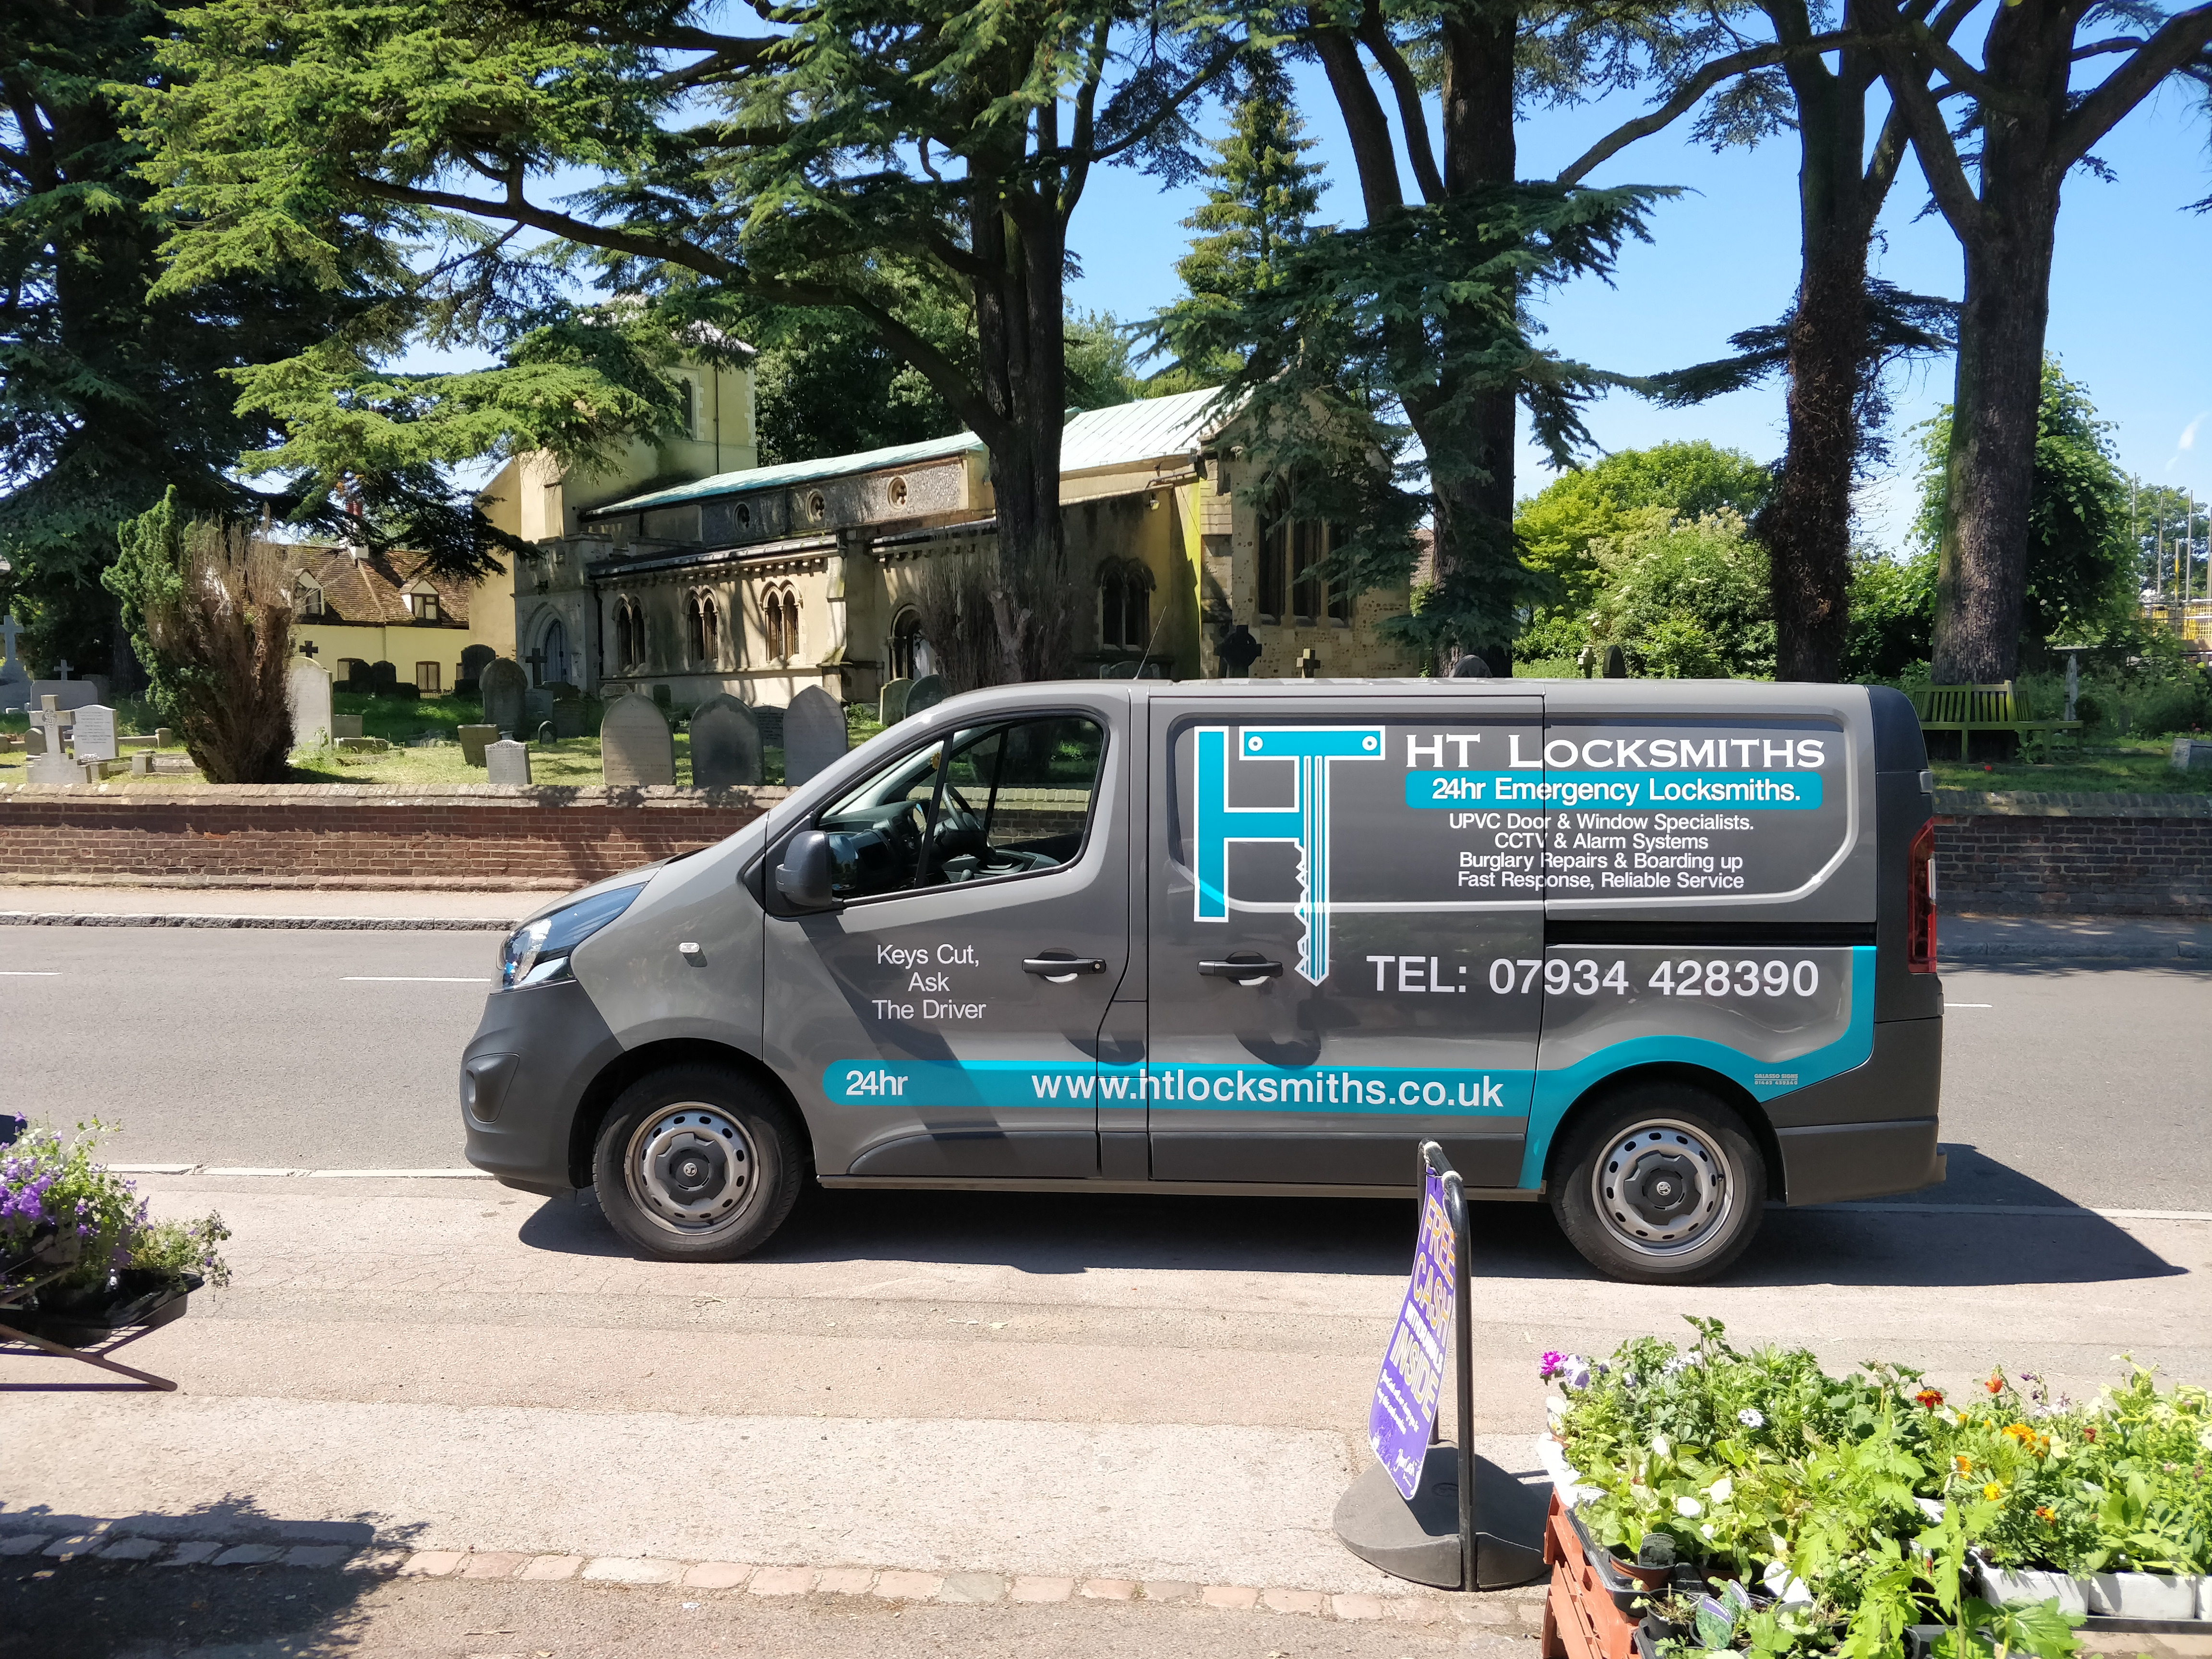 Locksmith Hitchin, Locksmith Icklefo